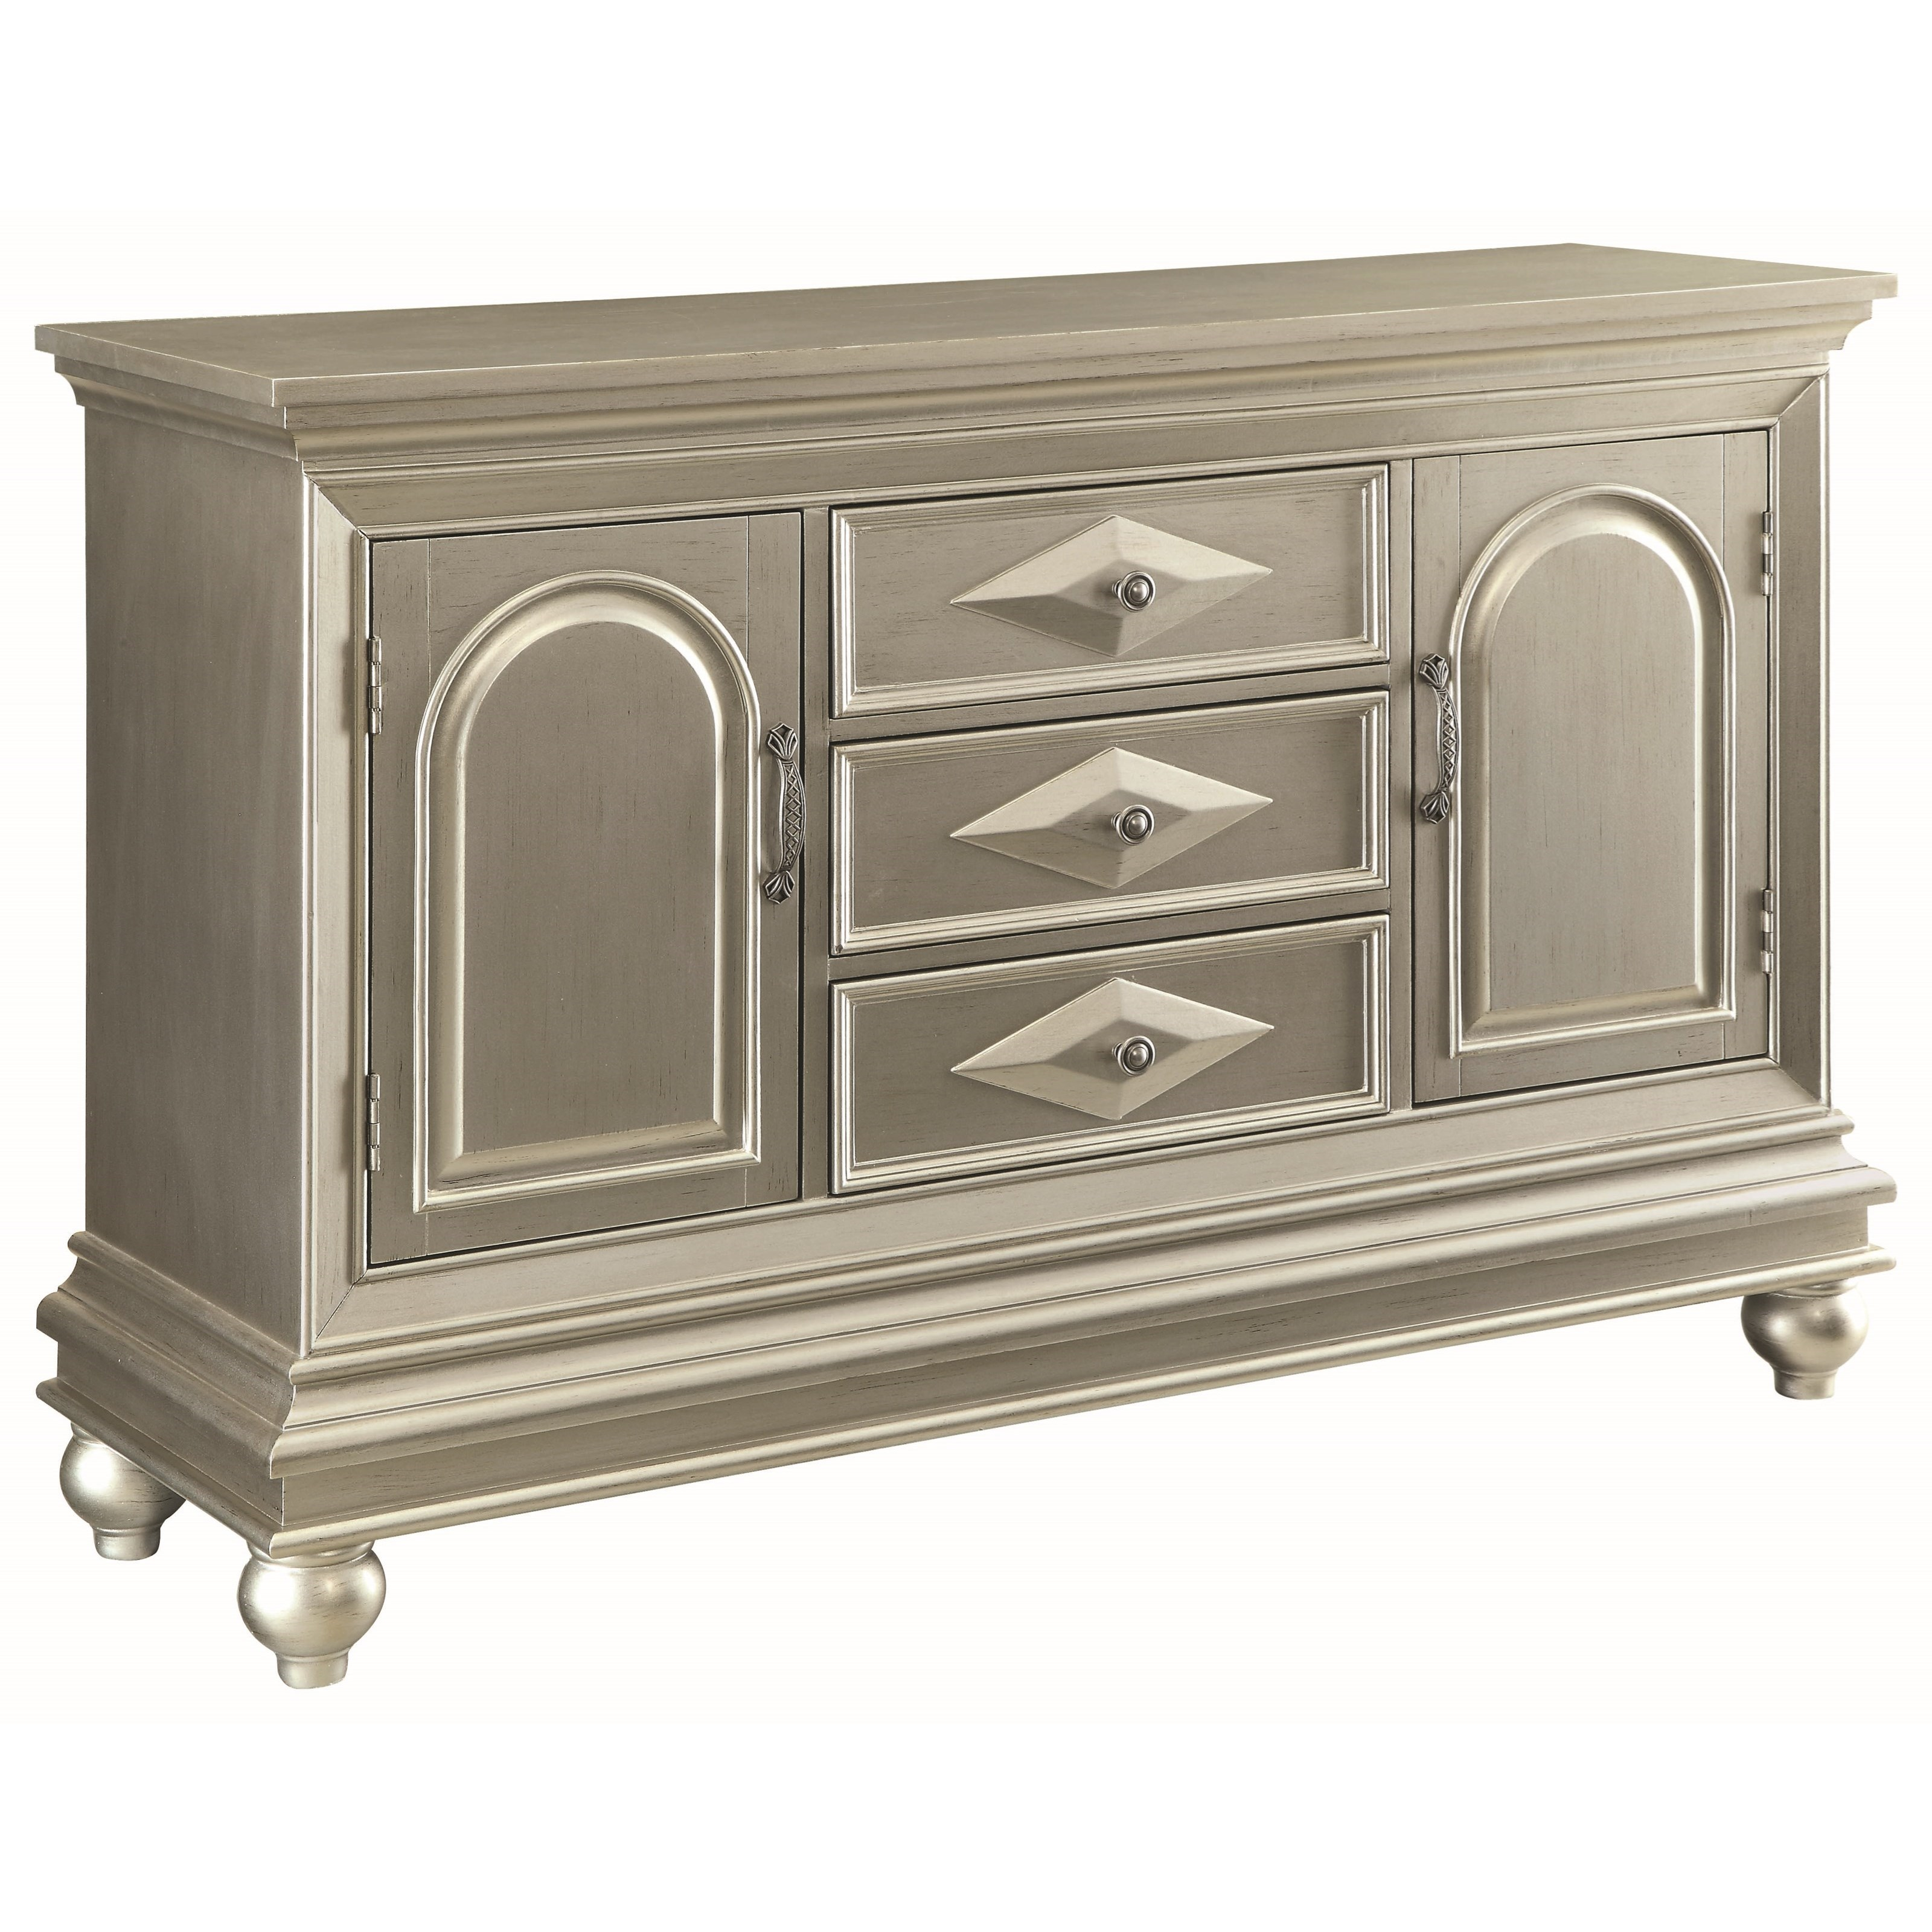 Coaster Accent Cabinets Accent Cabinet - Item Number: 950633